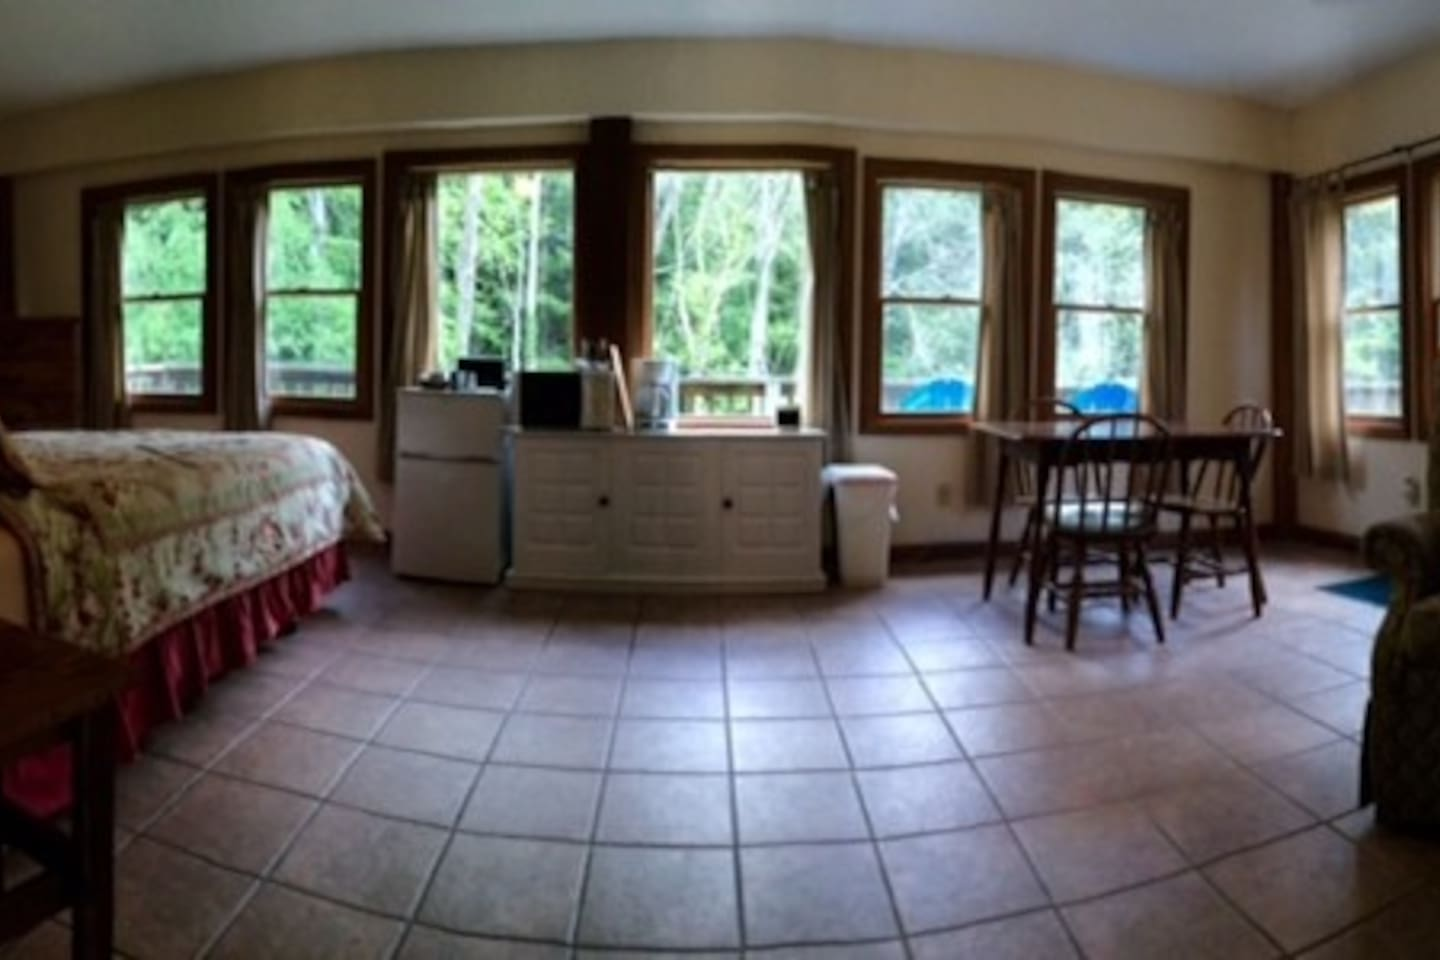 open room with kitchenette